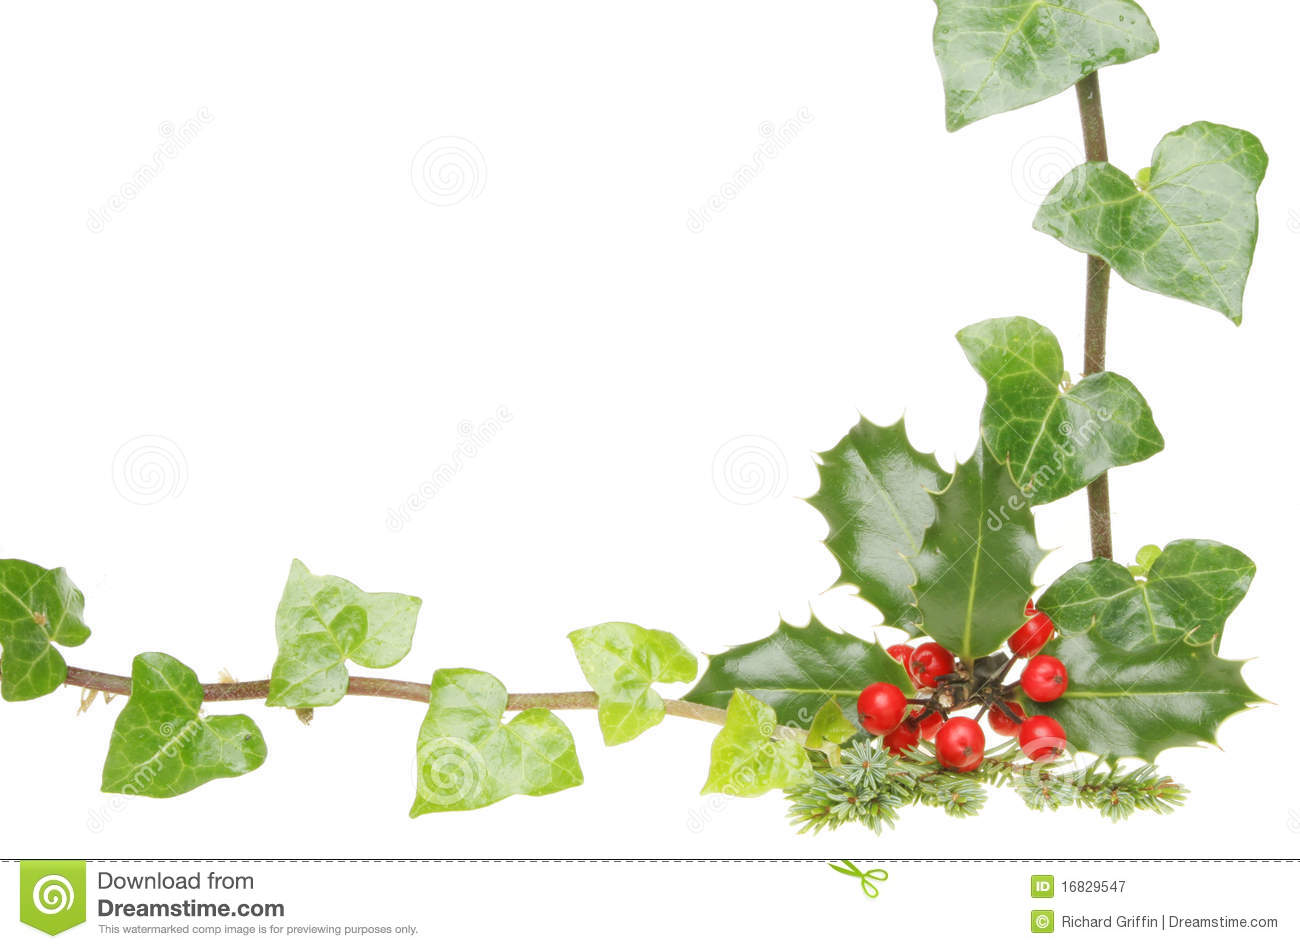 Holly and ivy frame royalty free stock photography image 16829547 for Holly and ivy border